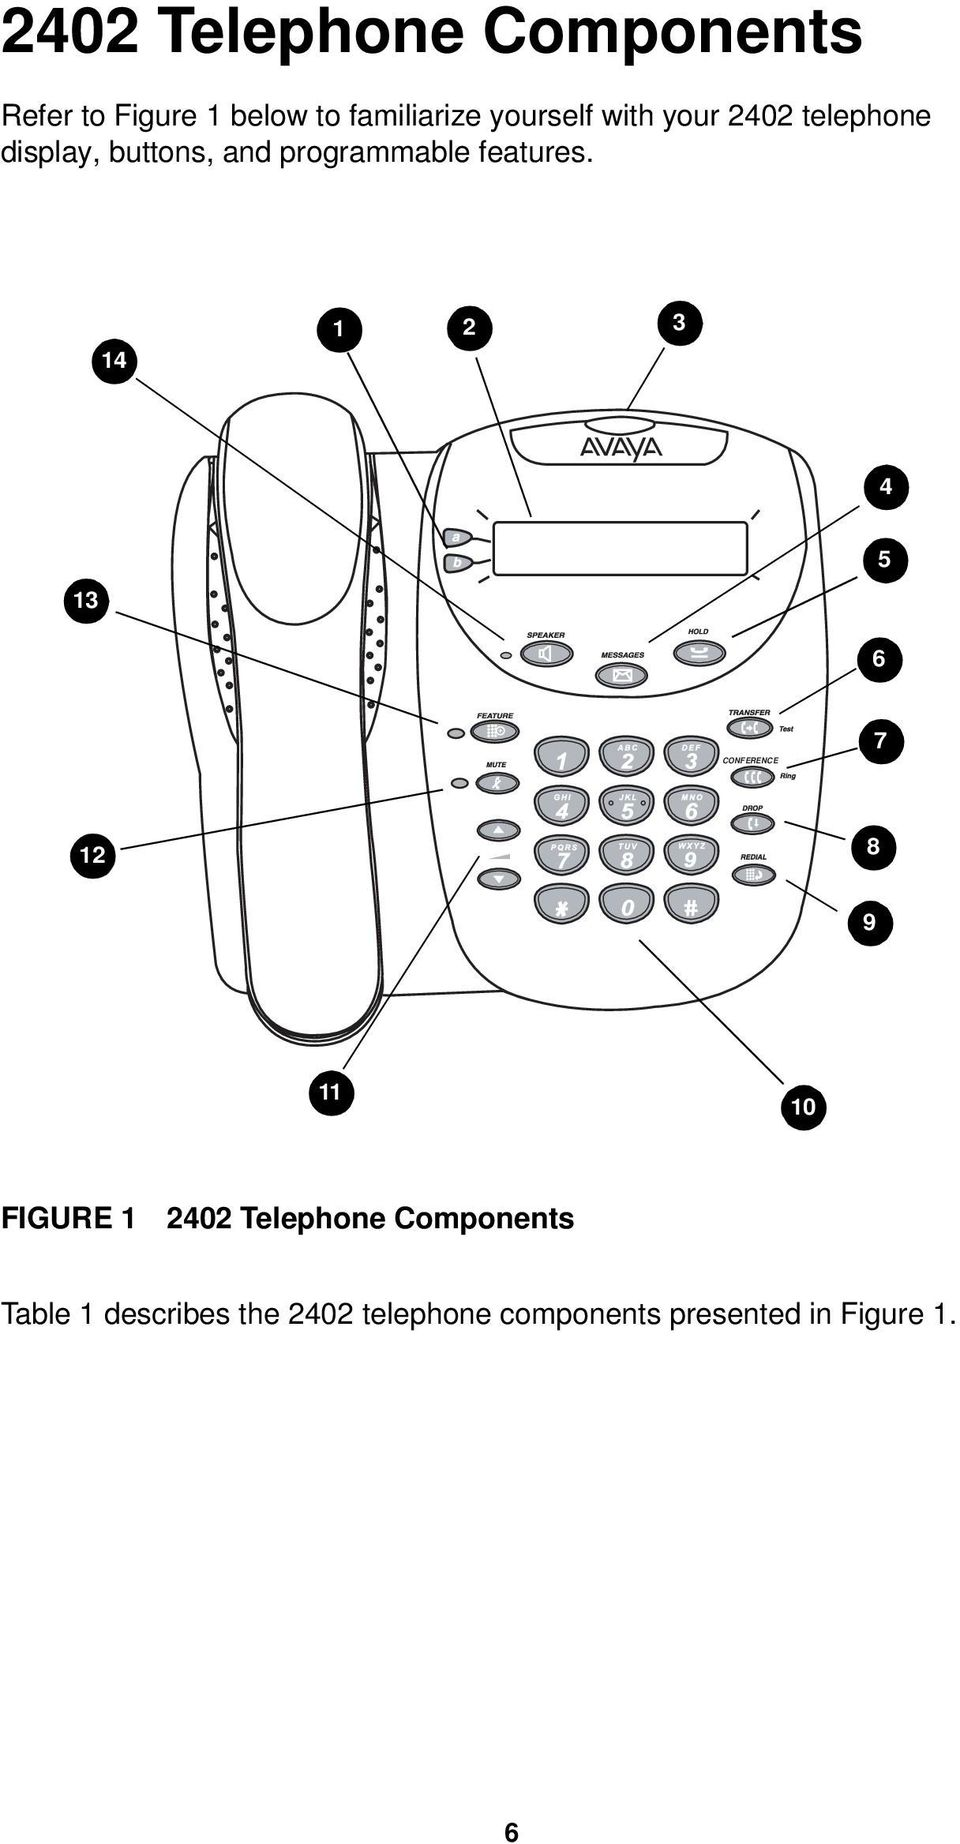 14 1 2 3 4 13 5 6 CONFERENCE 7 12 8 9 11 10 FIGURE 1 2402 Telephone